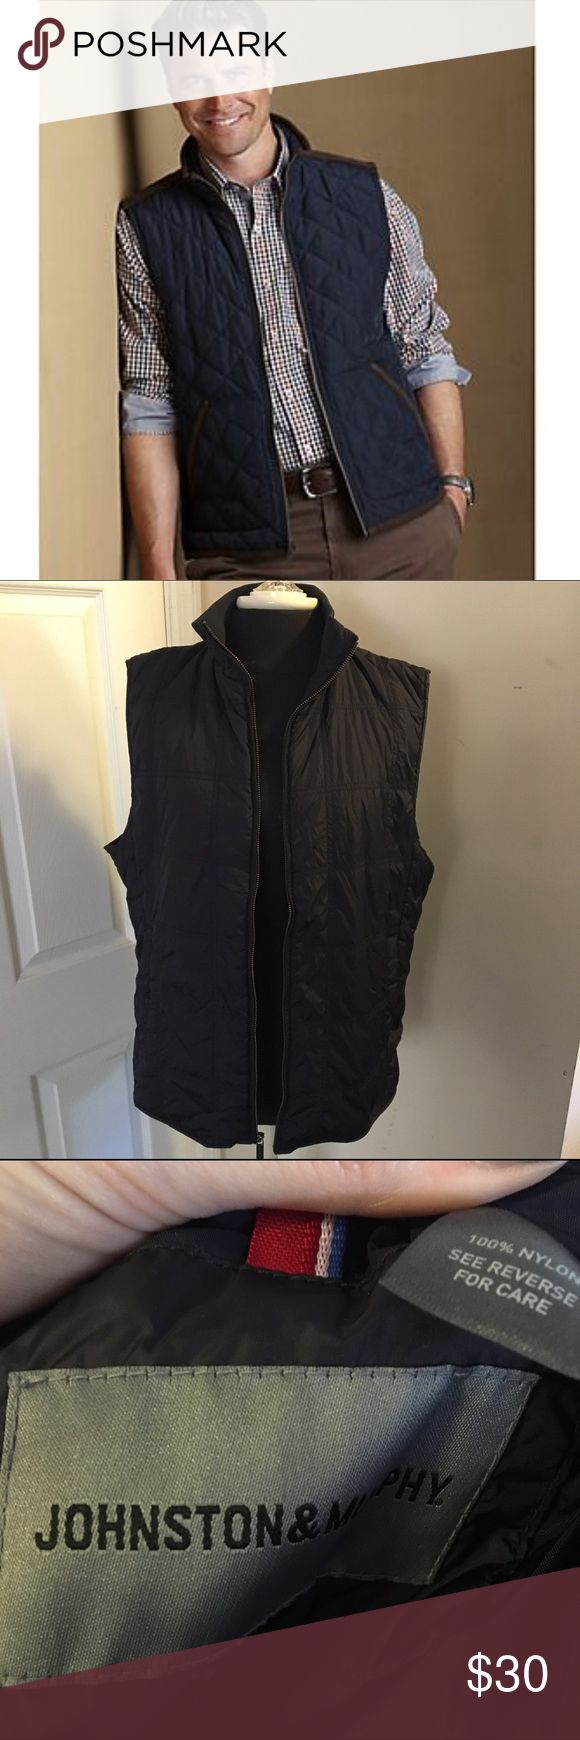 Johnston & Murphy navy blue quilted puffer vest Johnston & Murphy navy blue quilted thin puffer vest. Size is missing but I am a women's large and if fits so I would safely call it a men's medium. First photo is a similar but different vest from Johnson & Murphy. Johnston & Murphy Jackets & Coats Vests